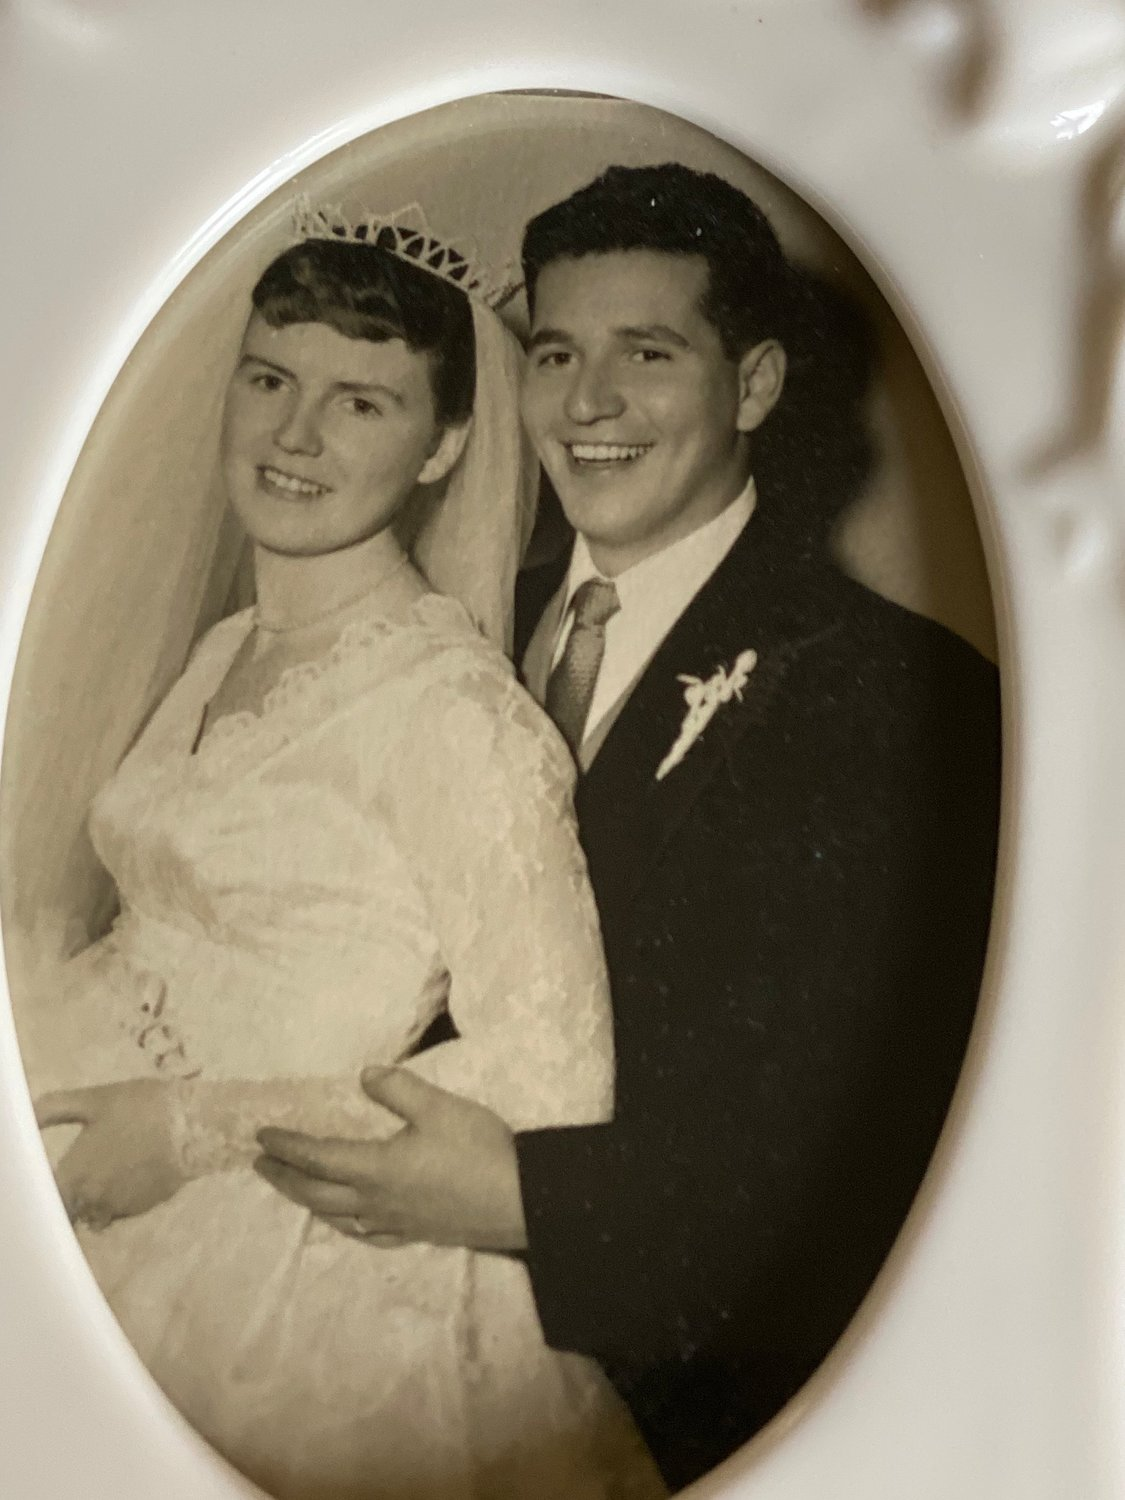 Nora and Frank Bertini on their wedding day, Oct. 6, 1956.